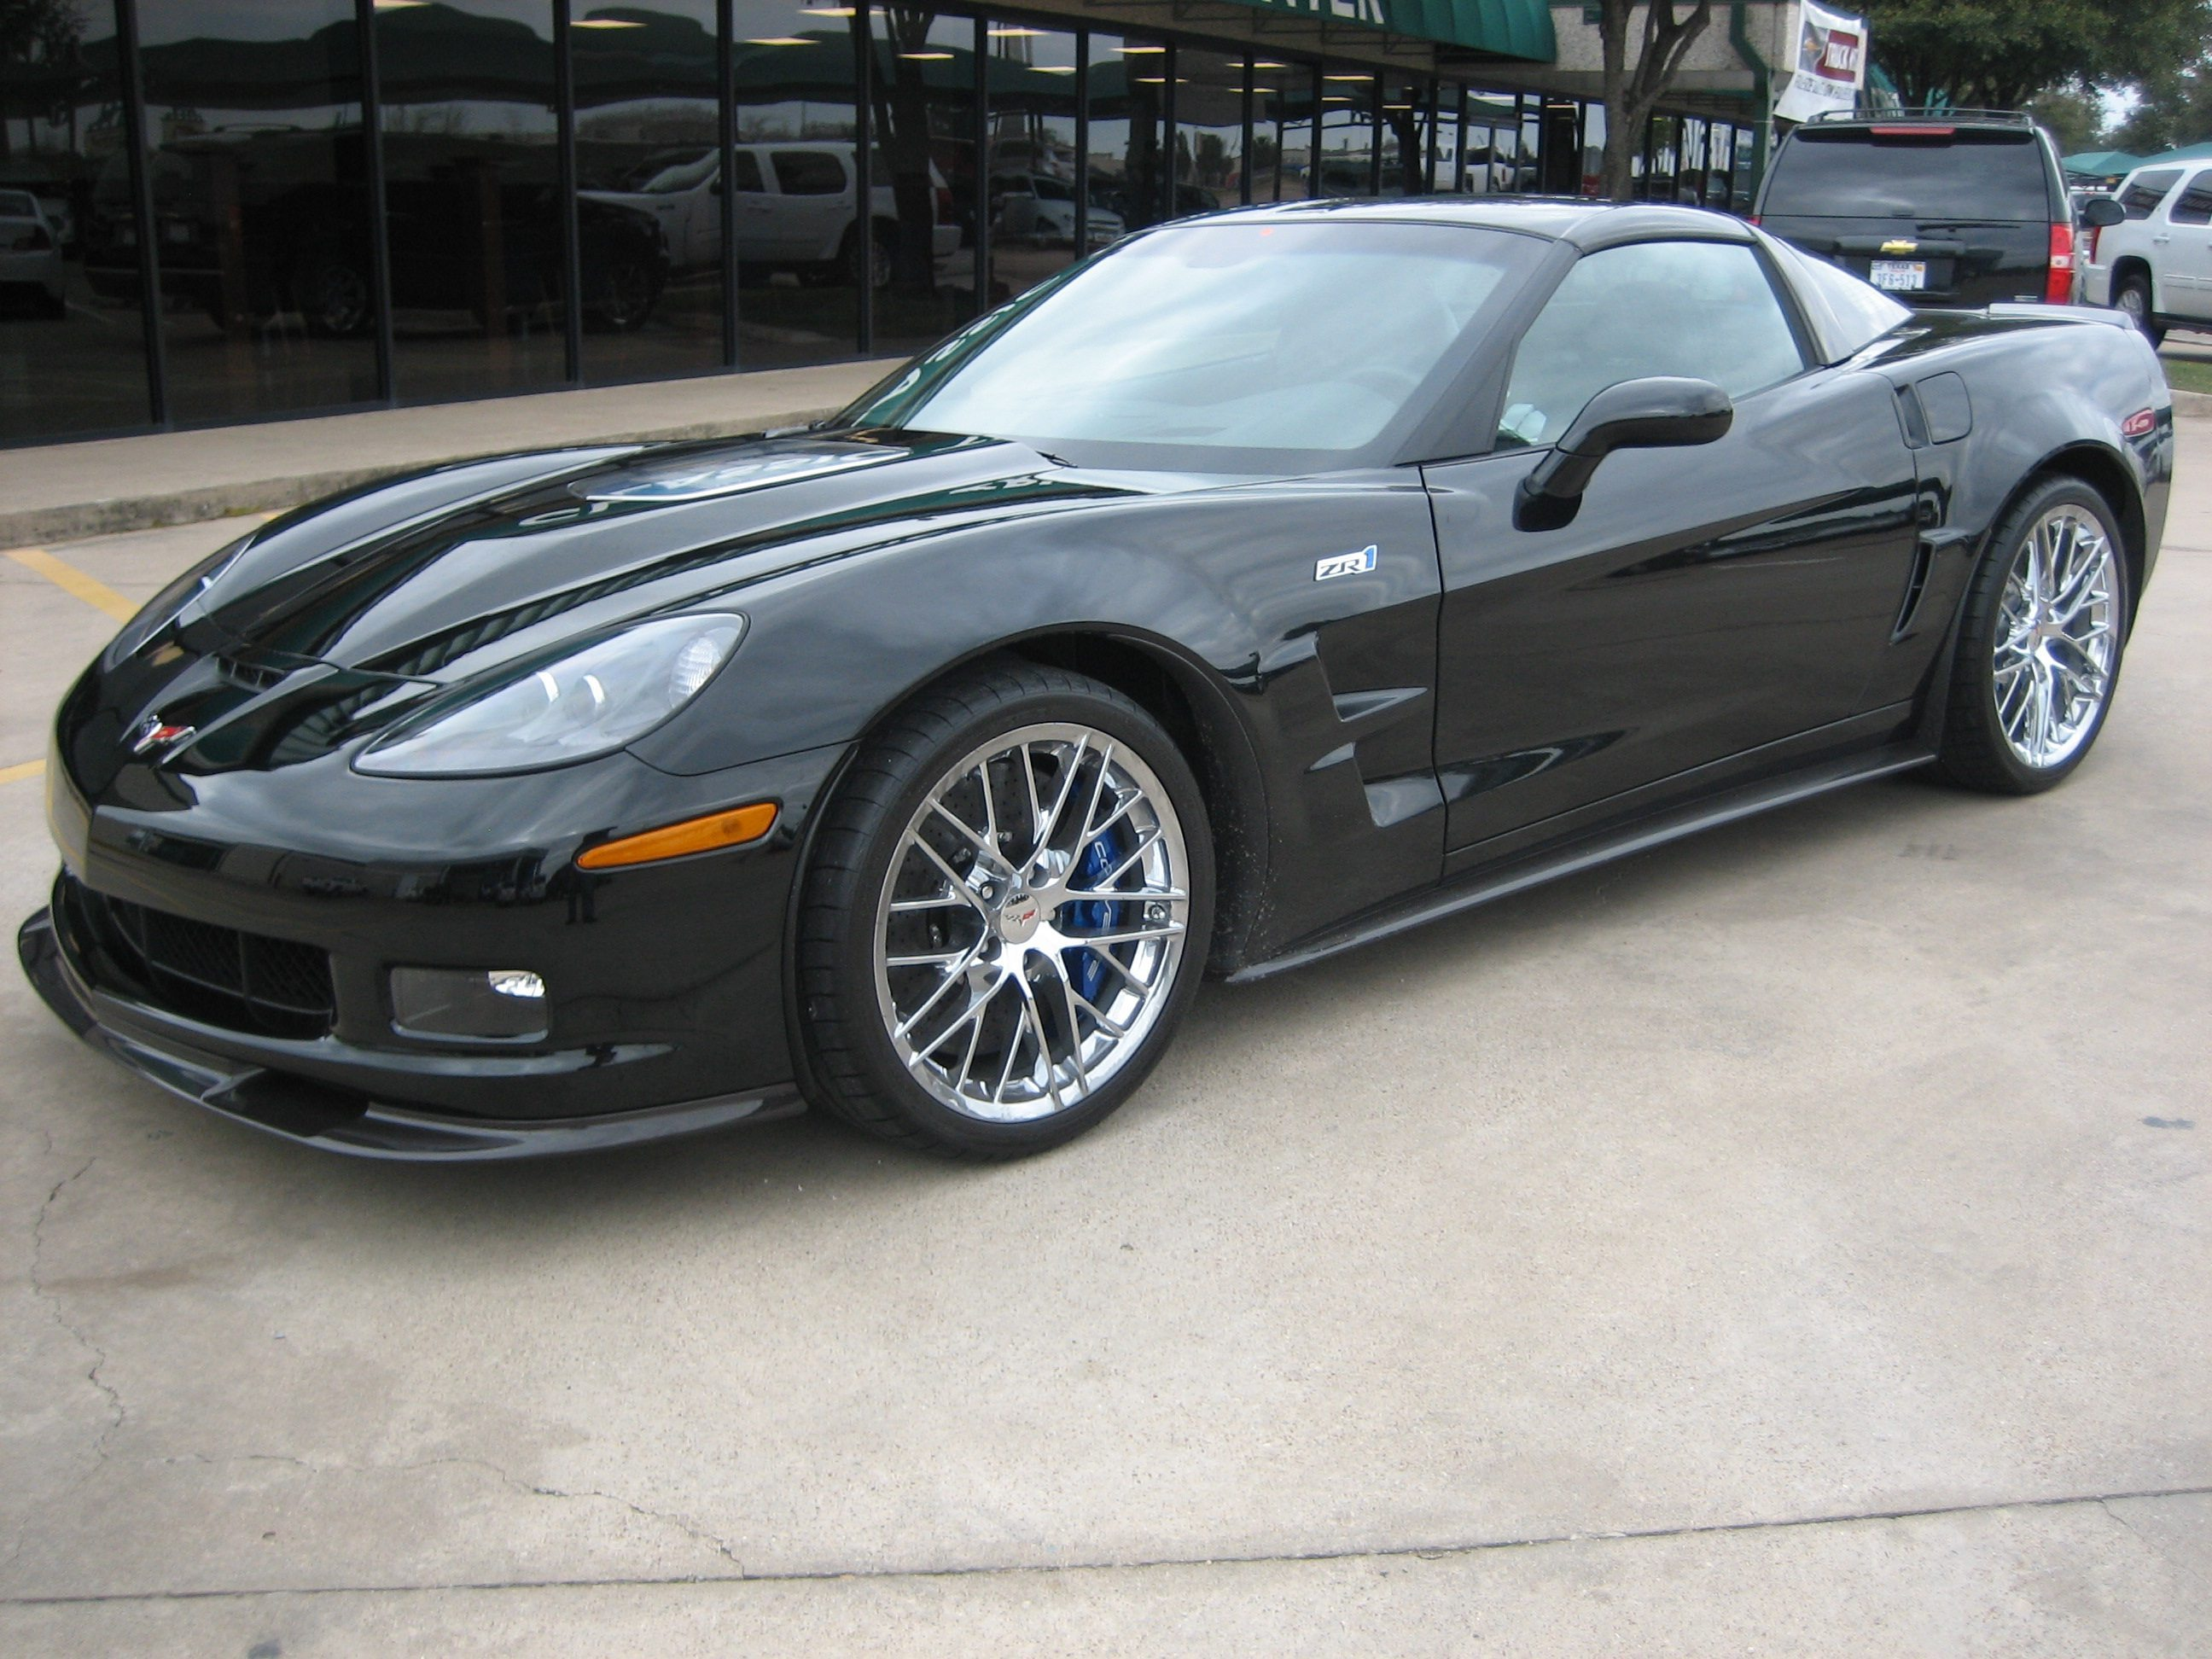 2010 Chevrolet Corvette Zr1 Image Gallery Amp Pictures